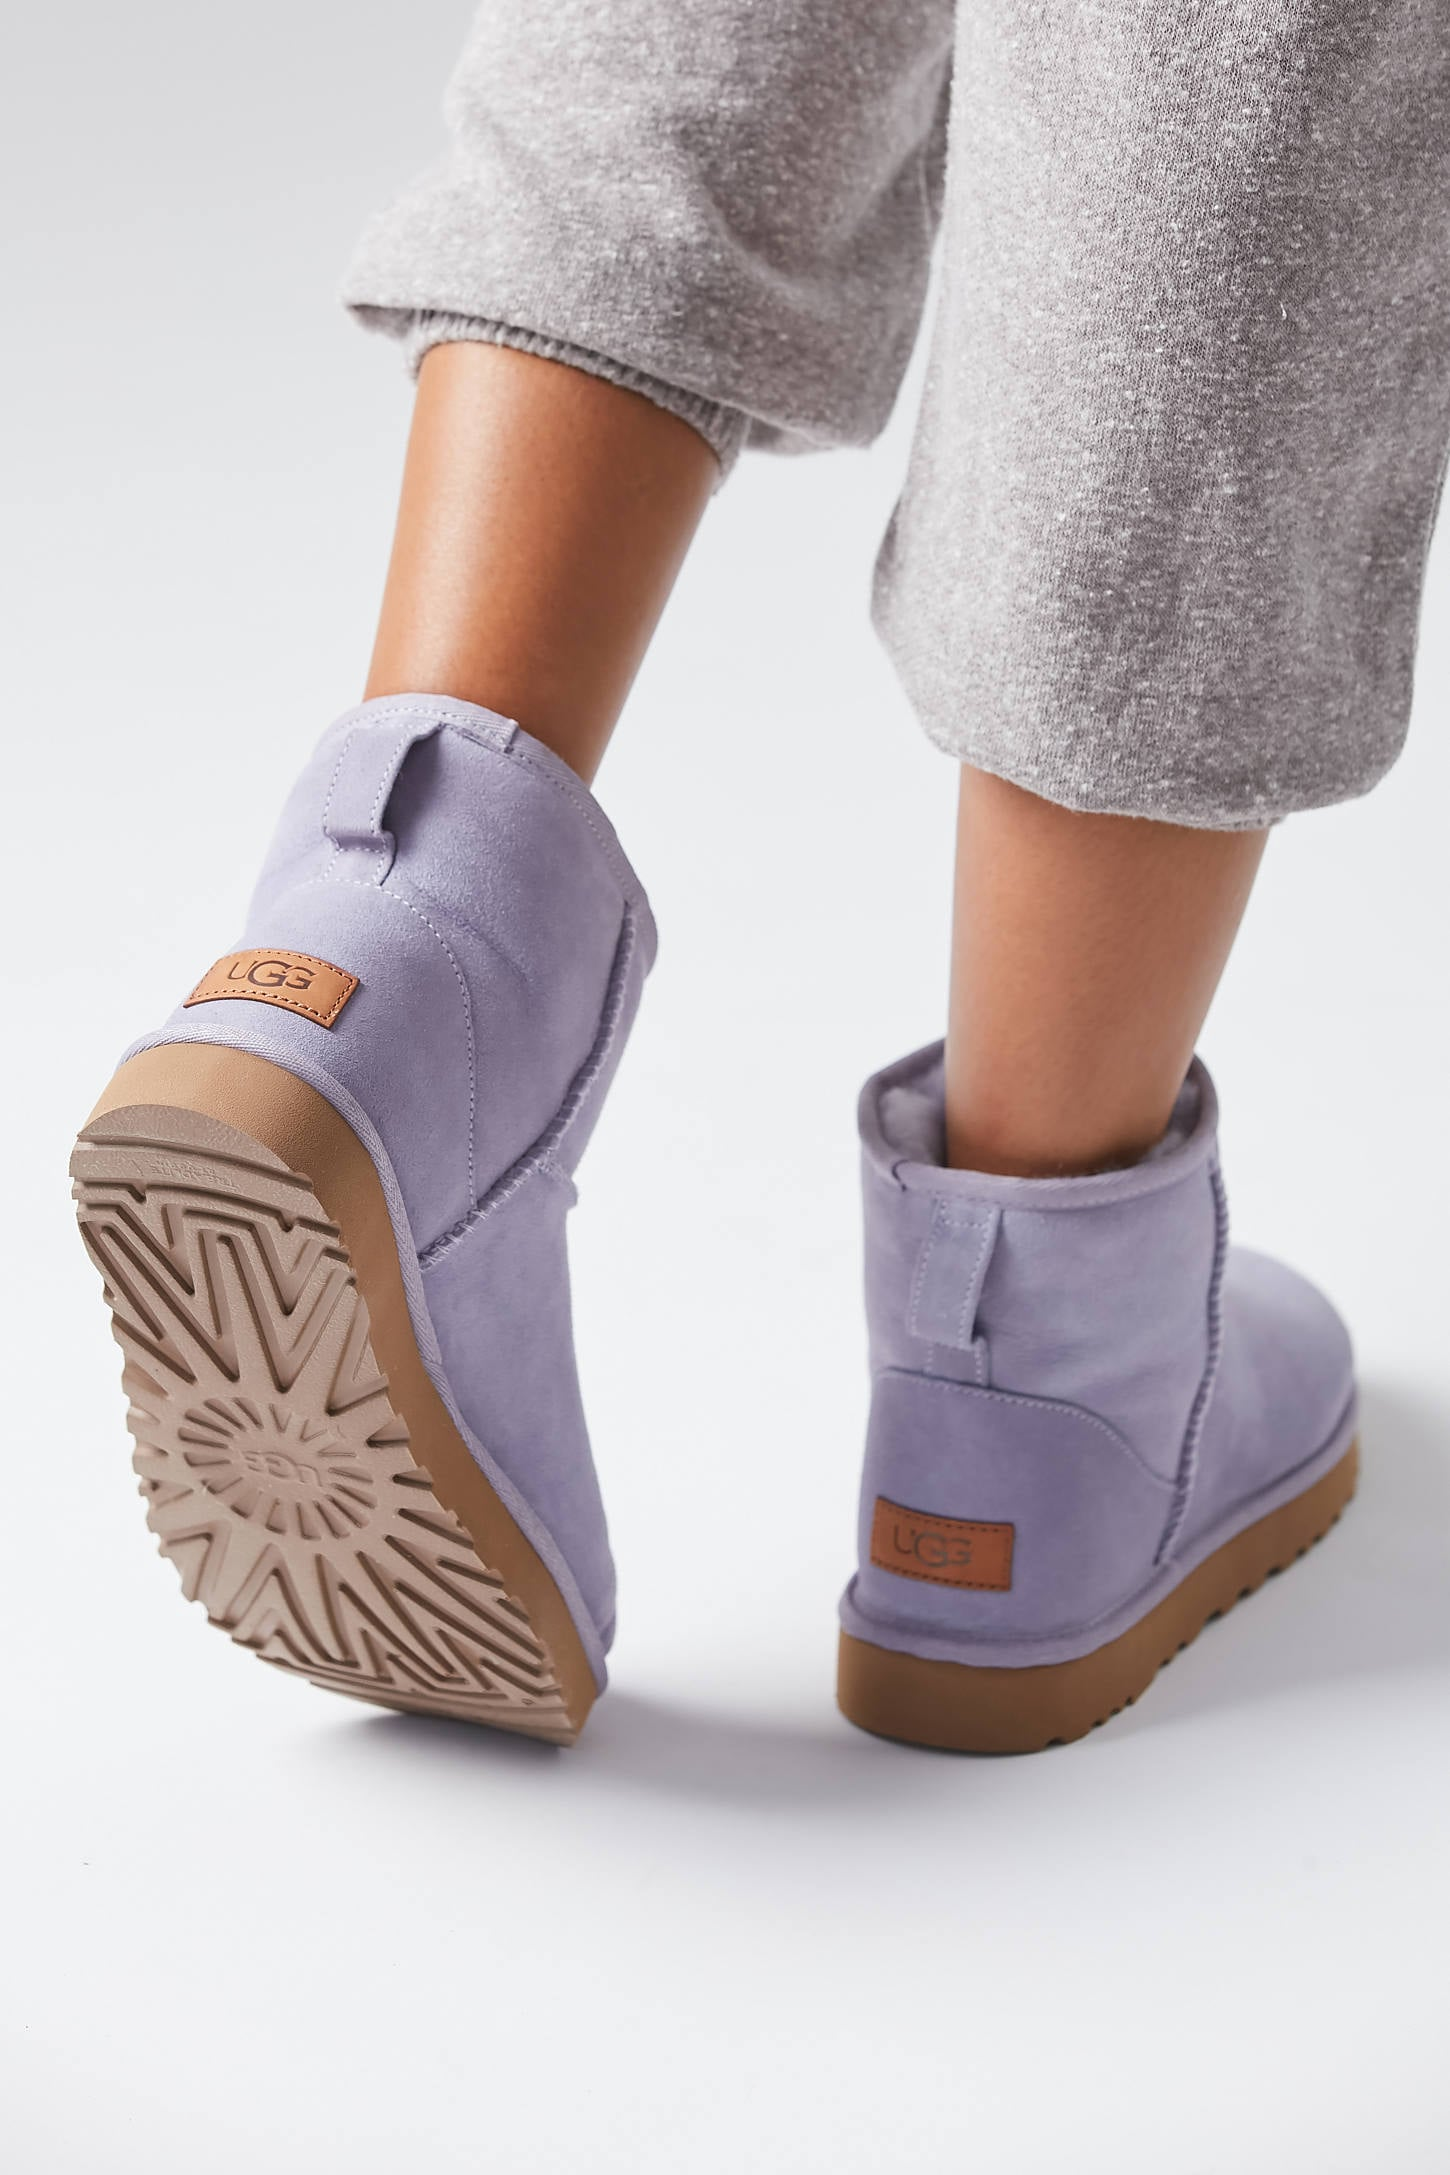 exclusive ugg boots